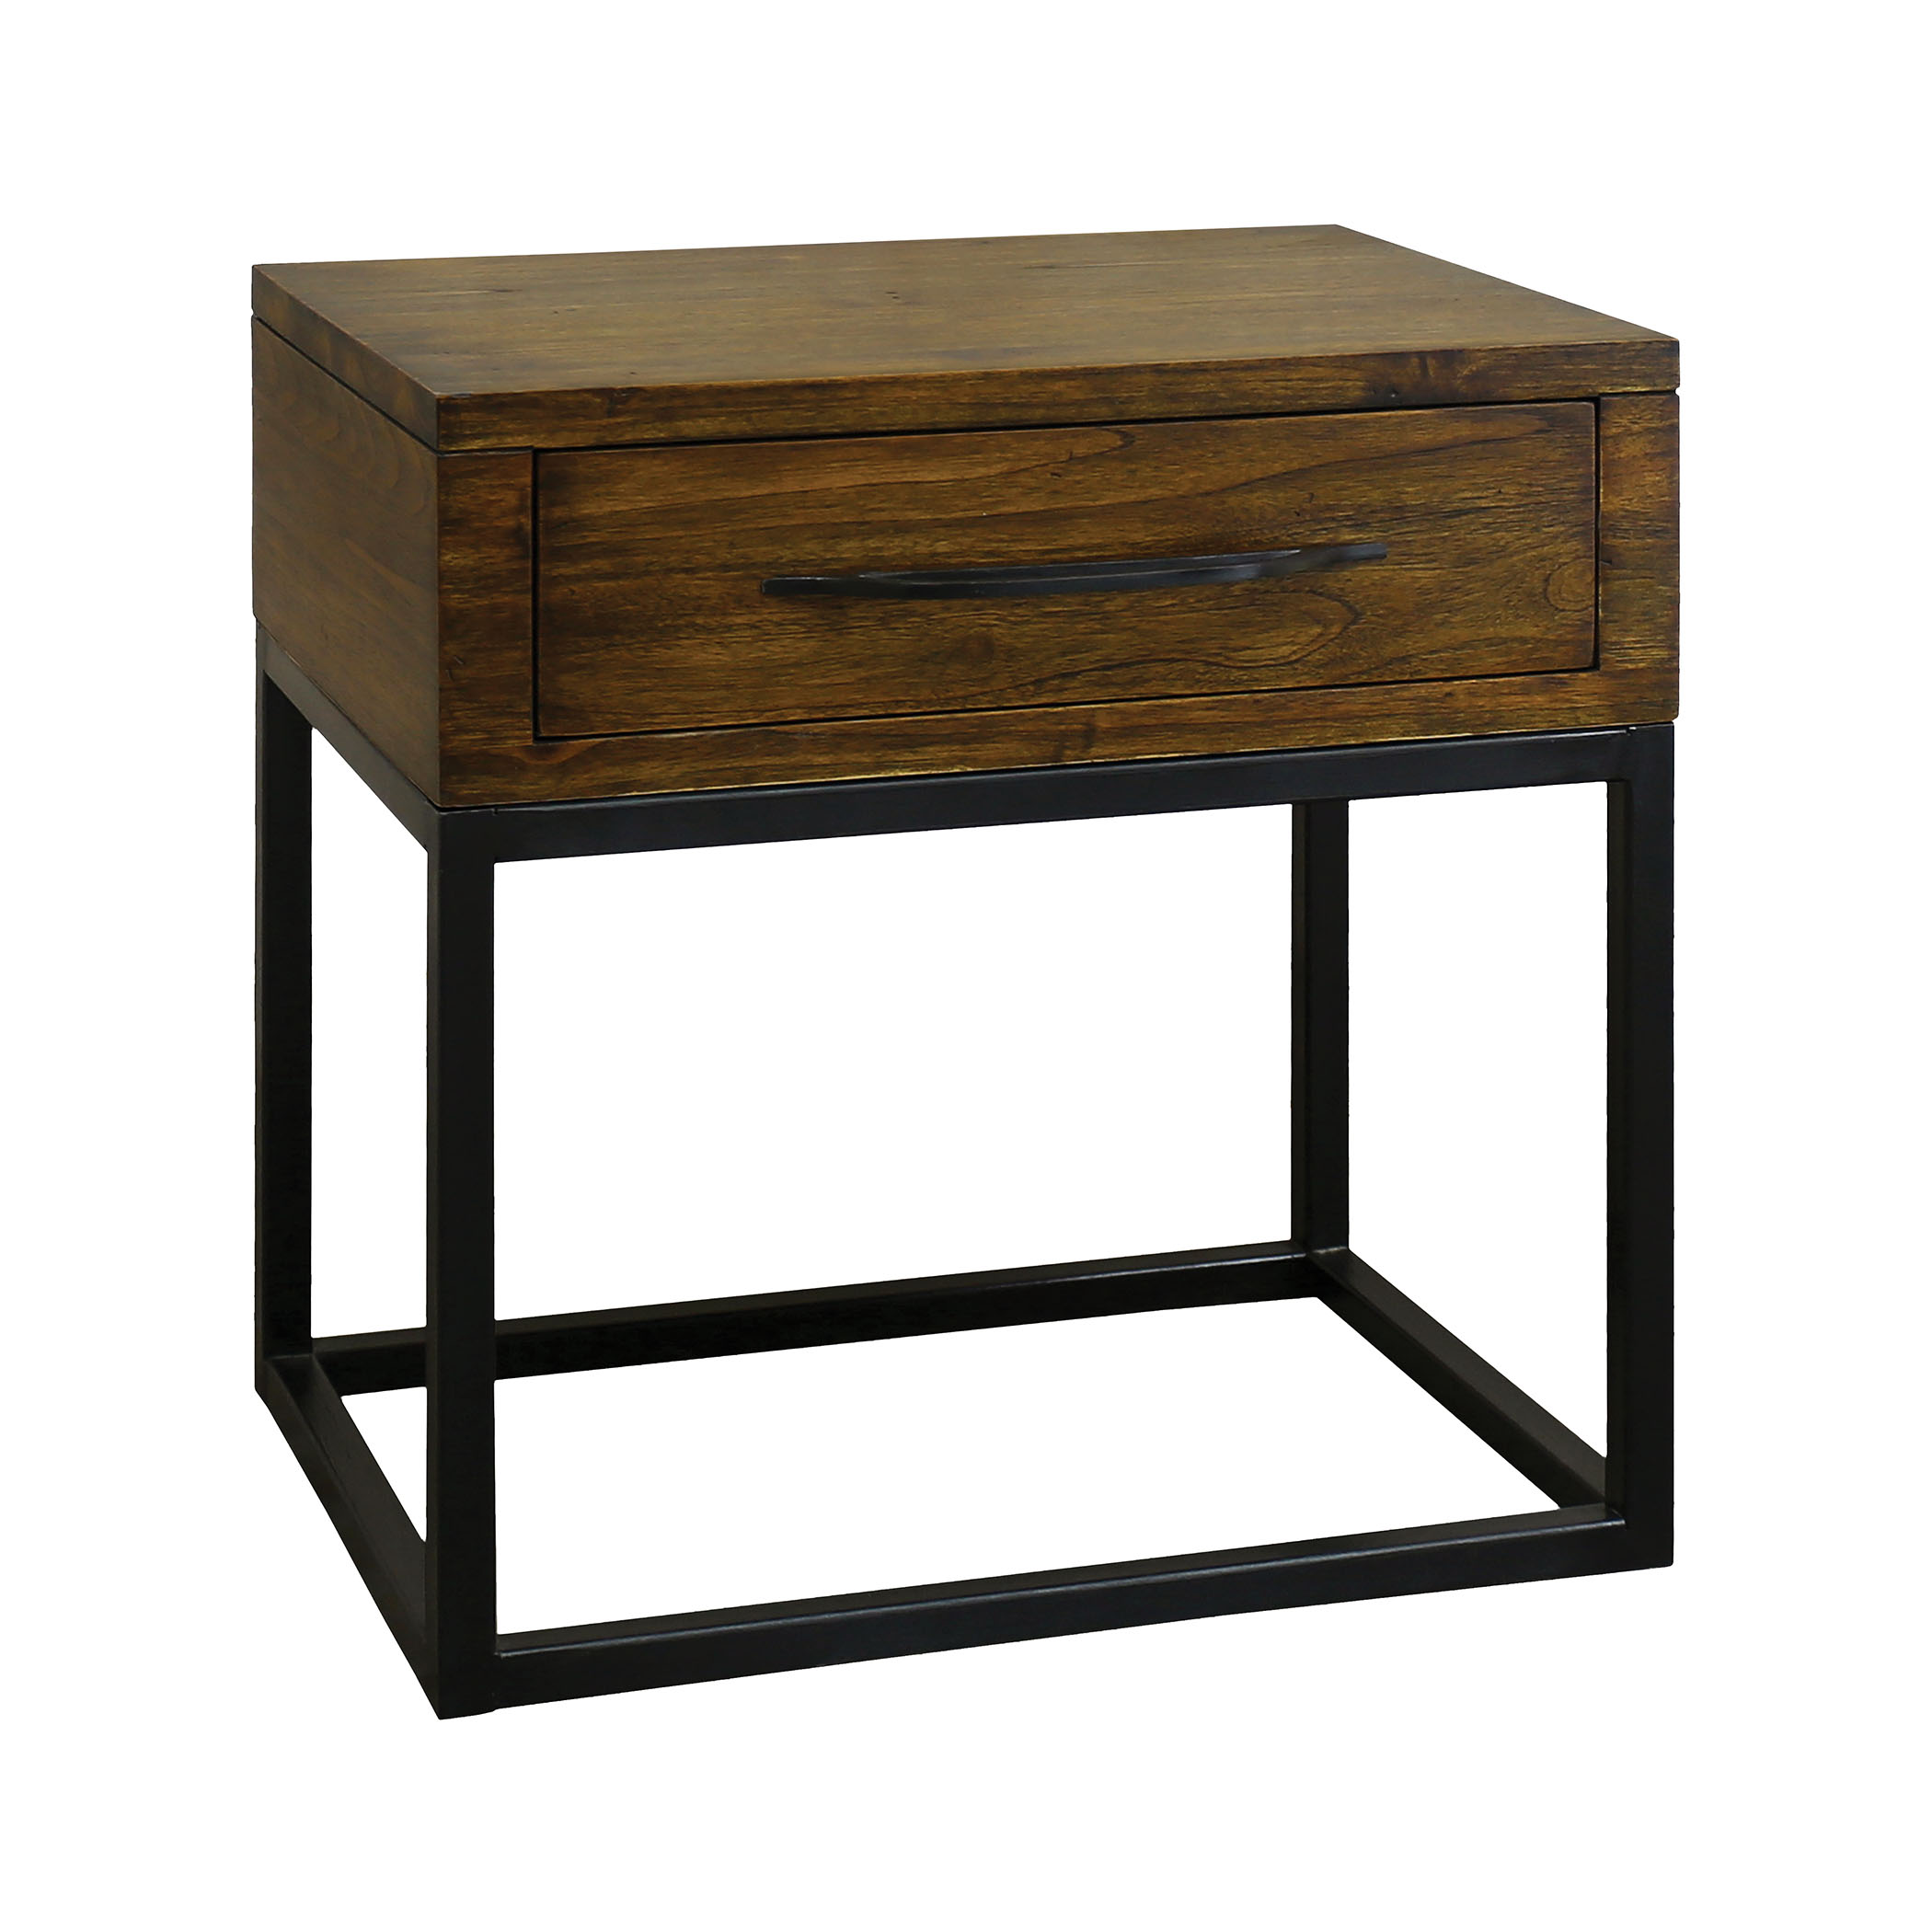 Stanley Accent Table in Wood and Metal | Elk Home